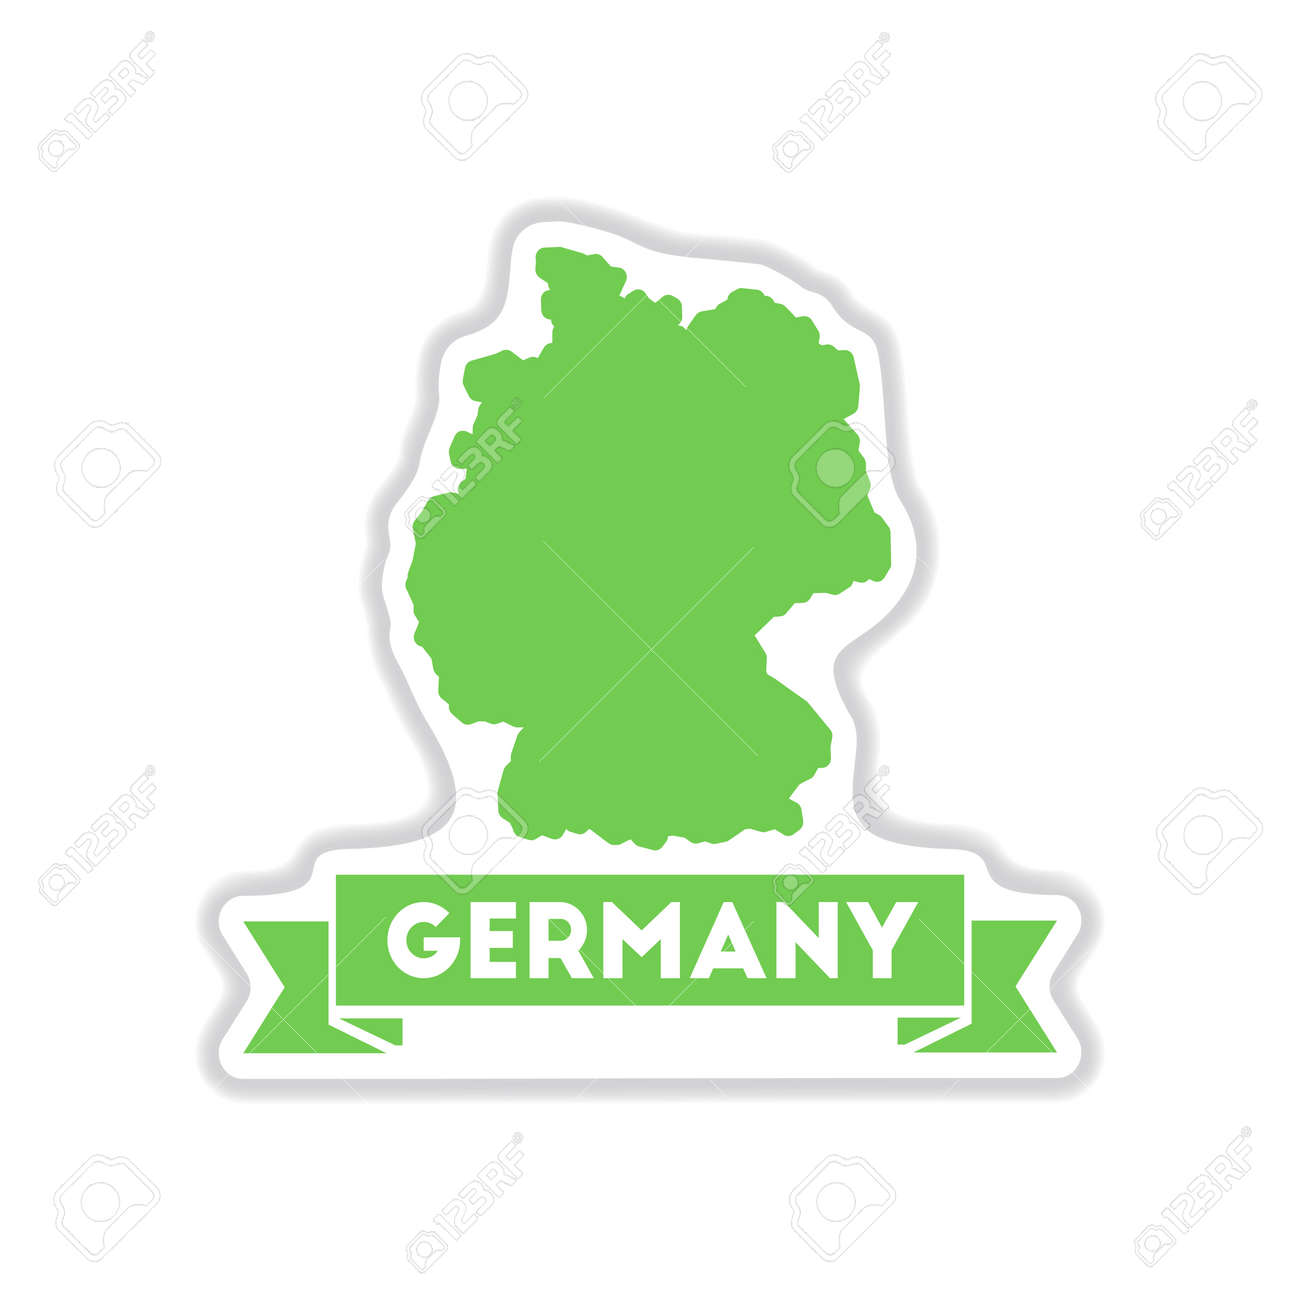 paper sticker on white background Germany map - 60063194